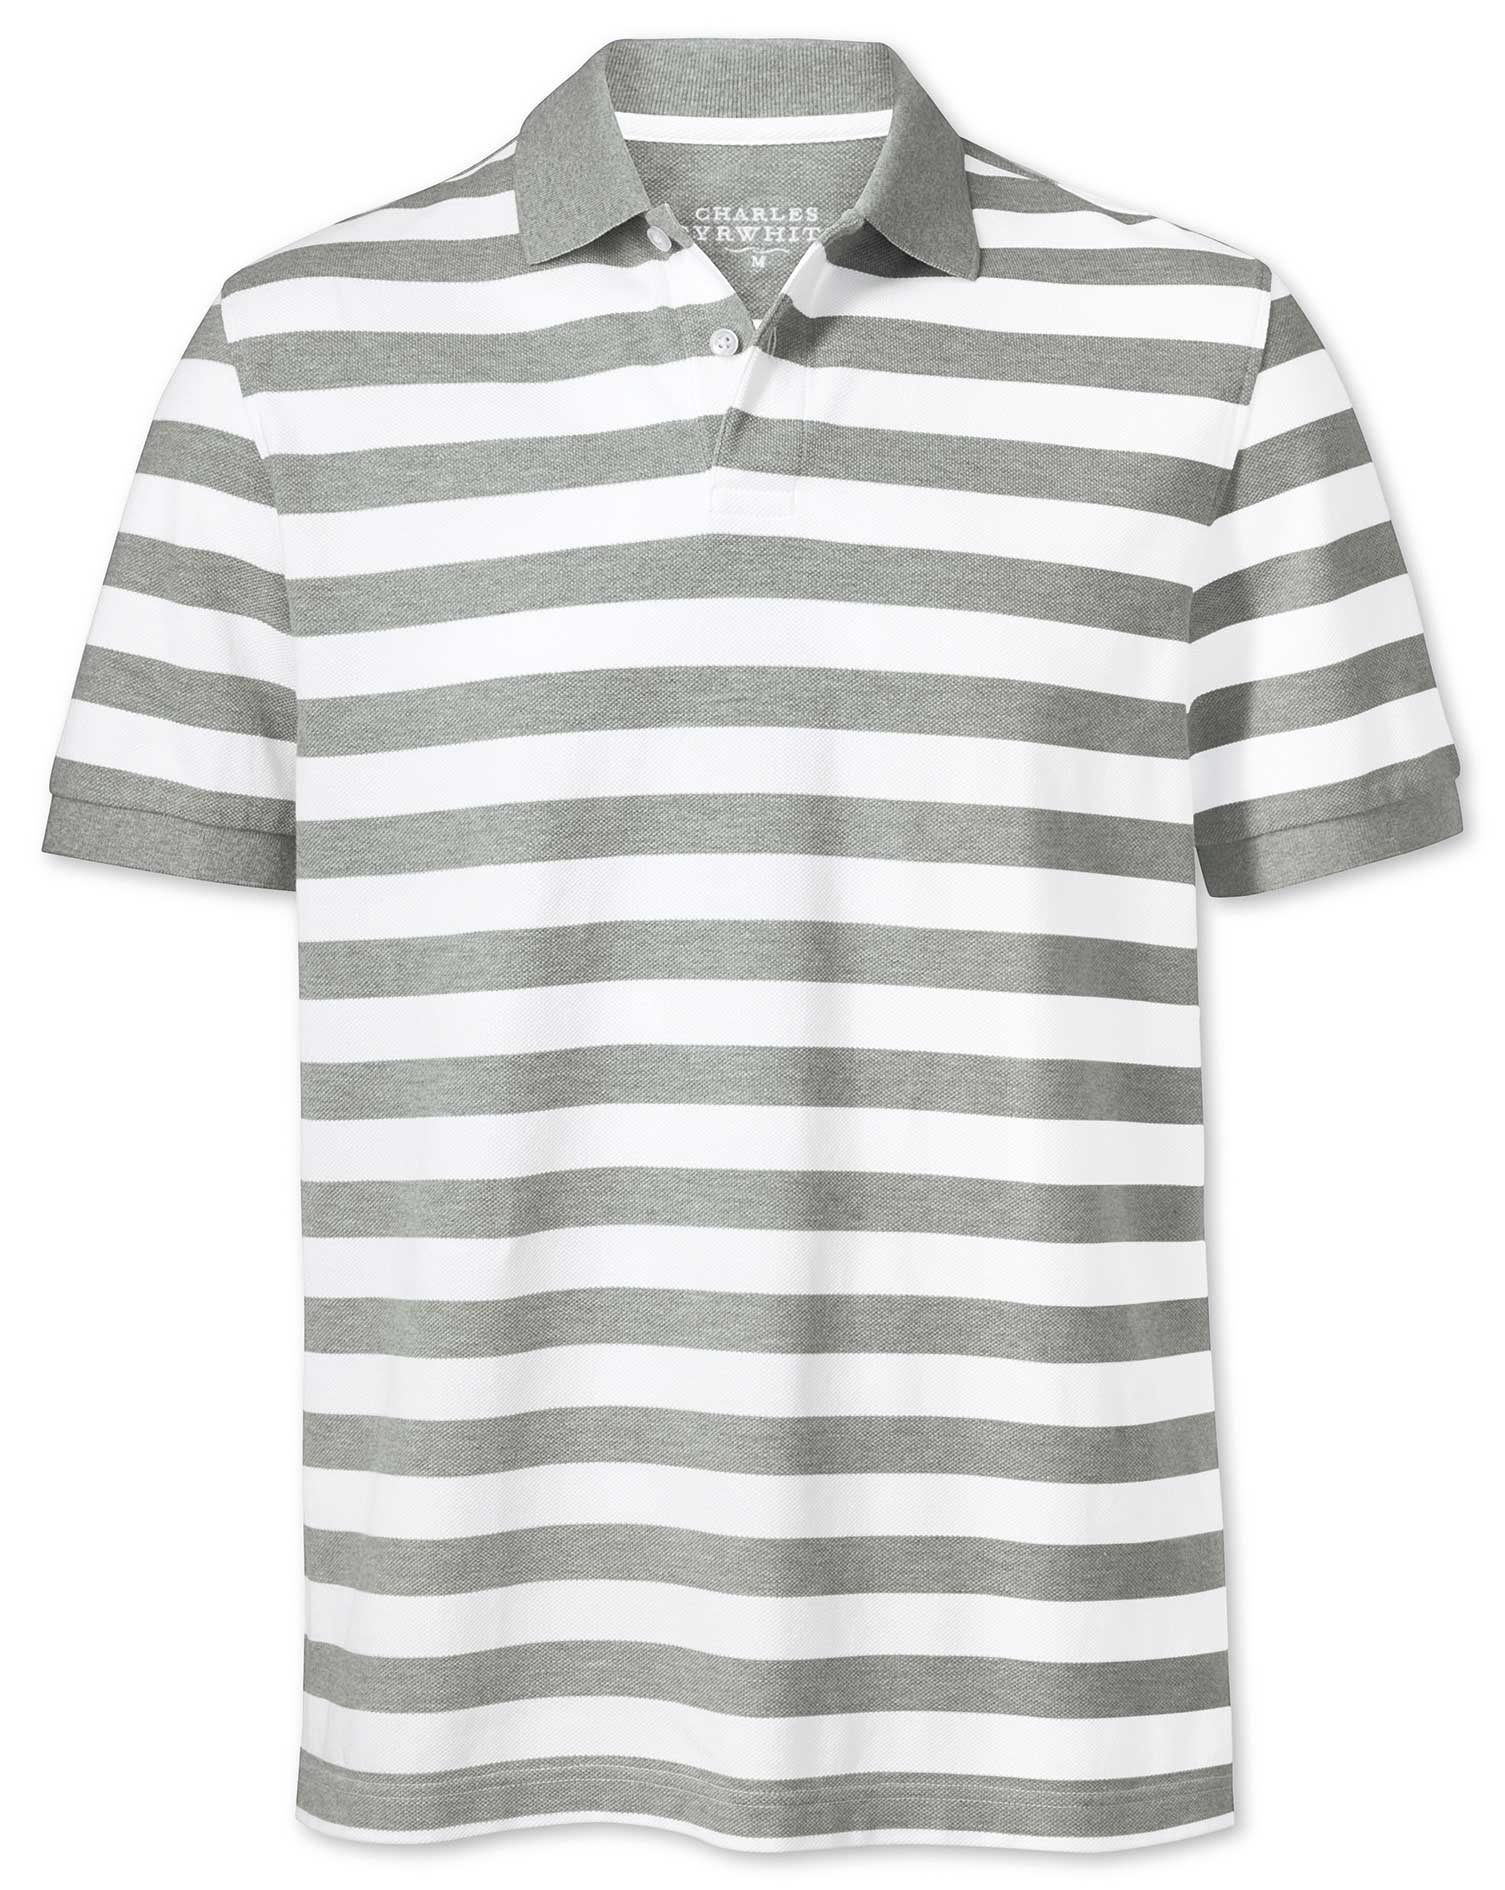 Grey and White Stripe Pique Cotton Polo Size Large by Charles Tyrwhitt